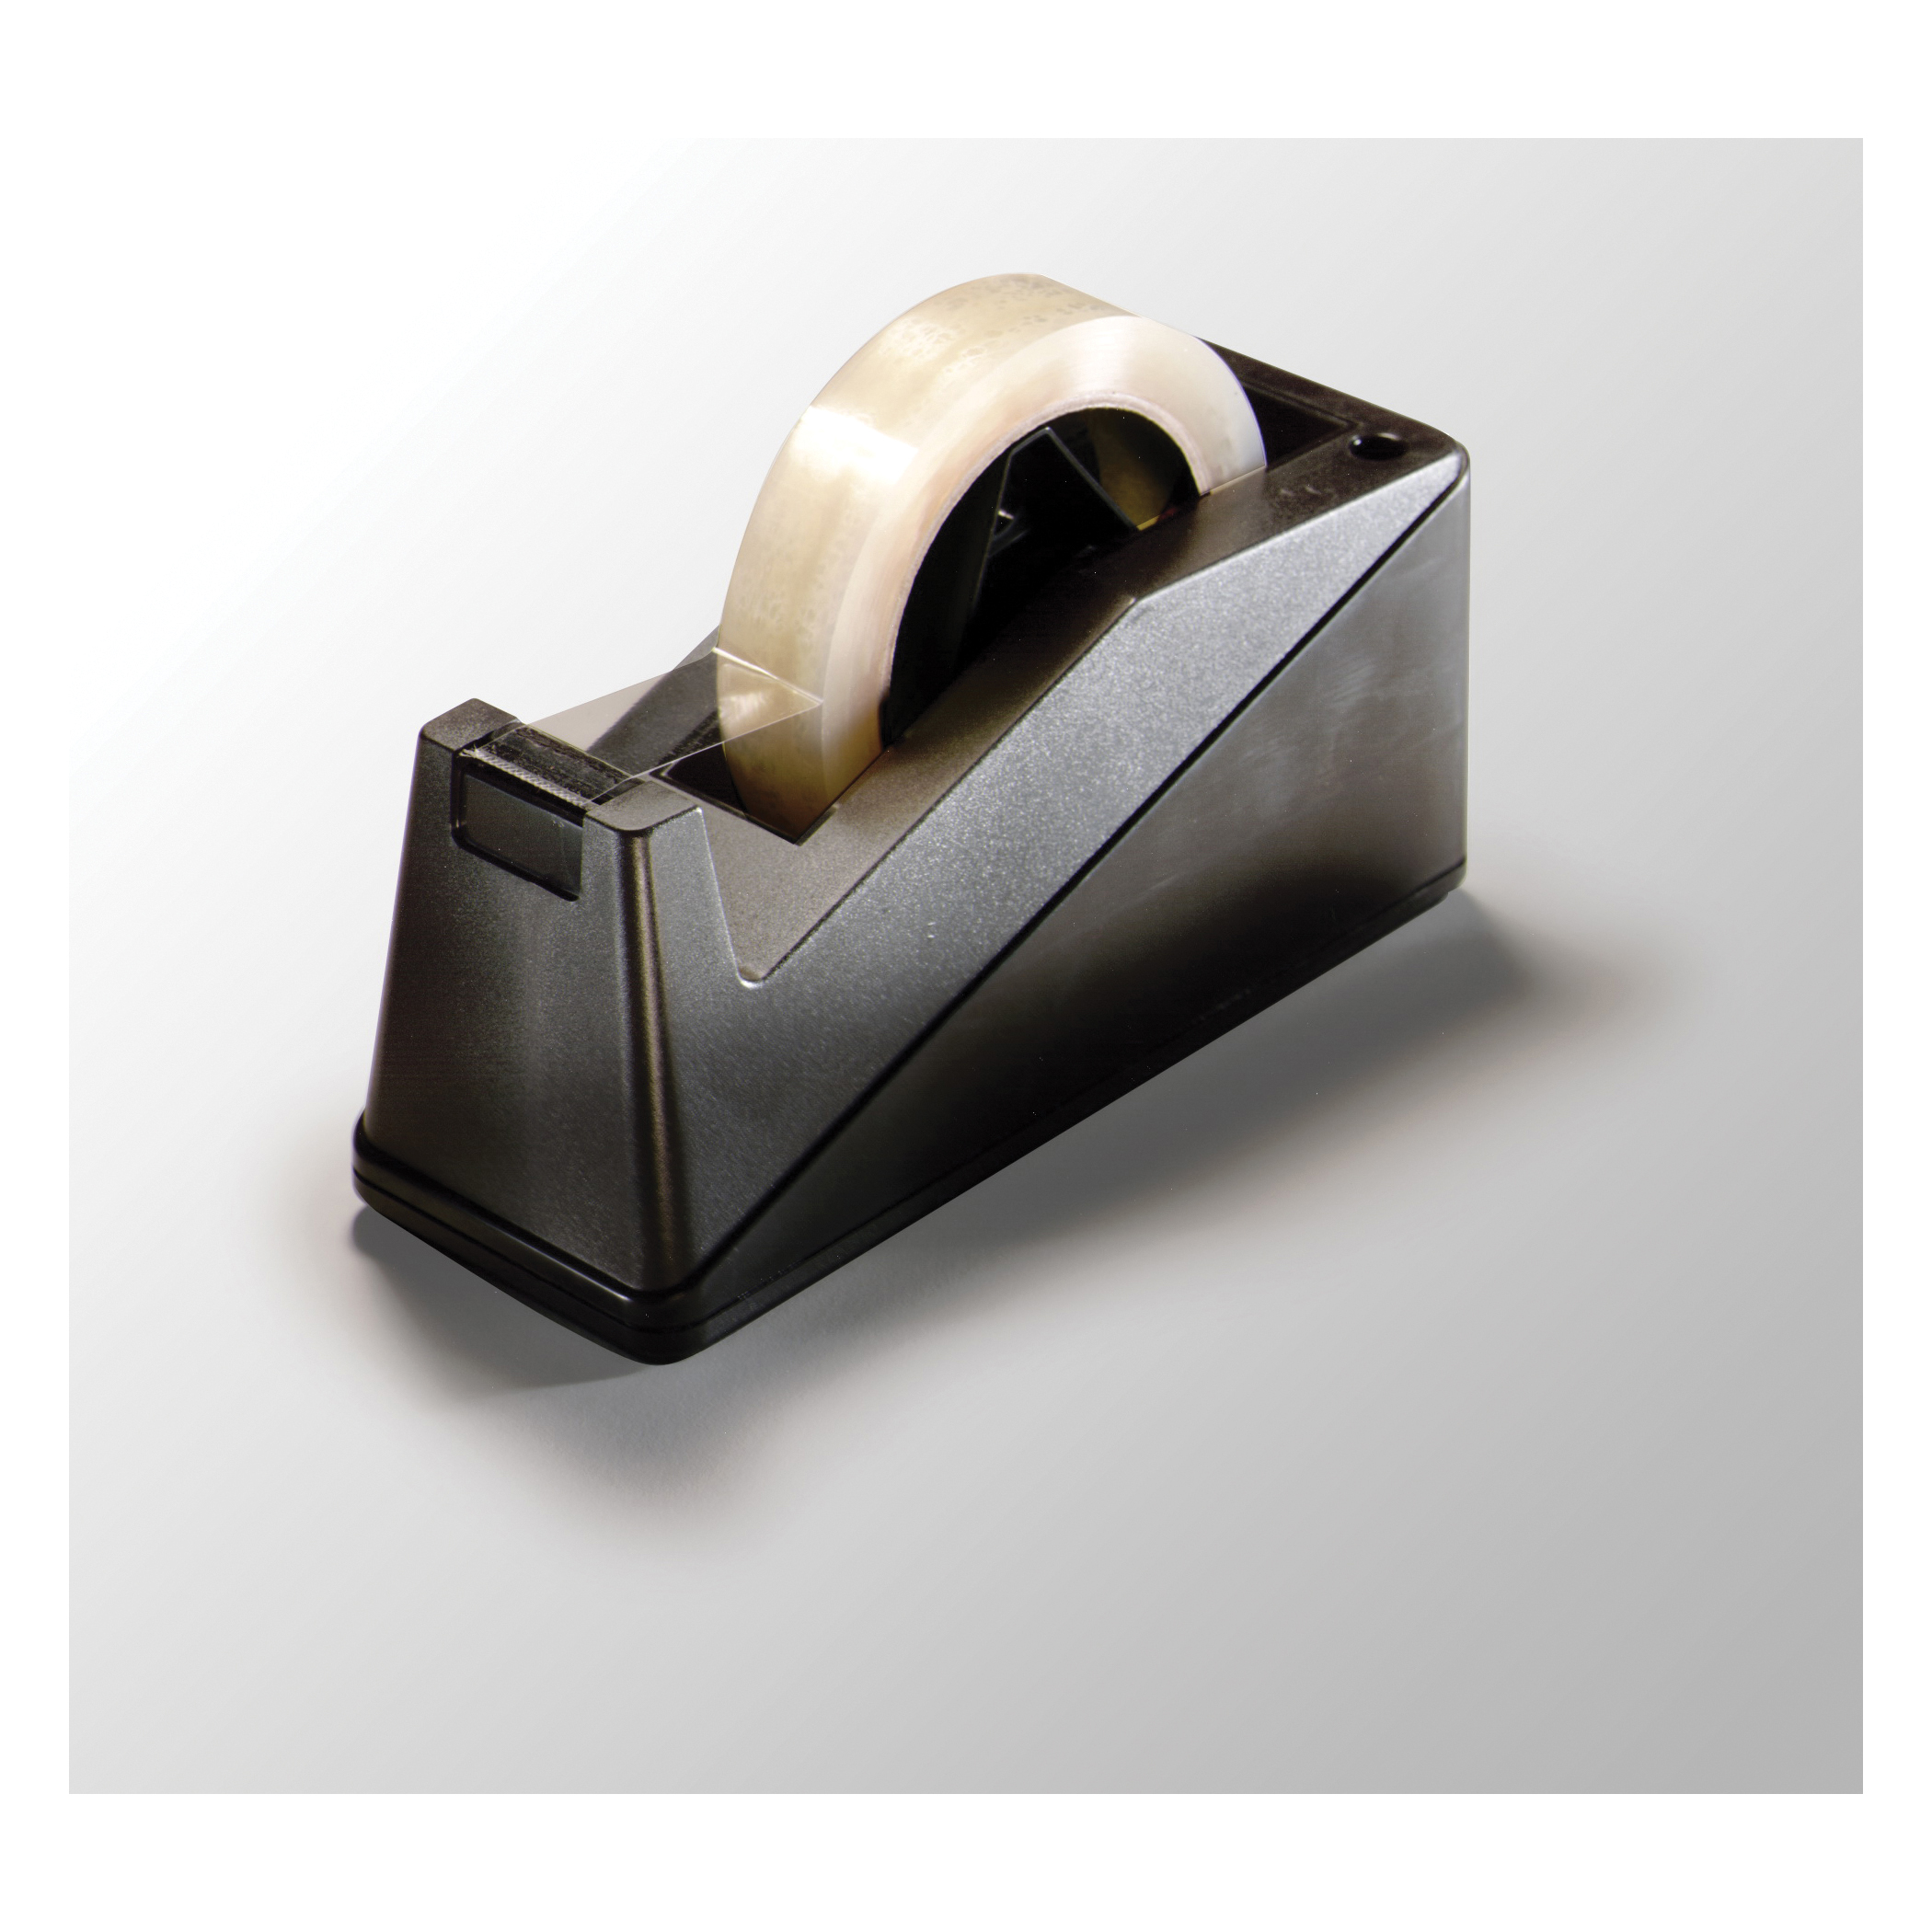 3M™ Tartan™ 051131-06993 HB900 Pull and Cut Tabletop Tape Dispenser